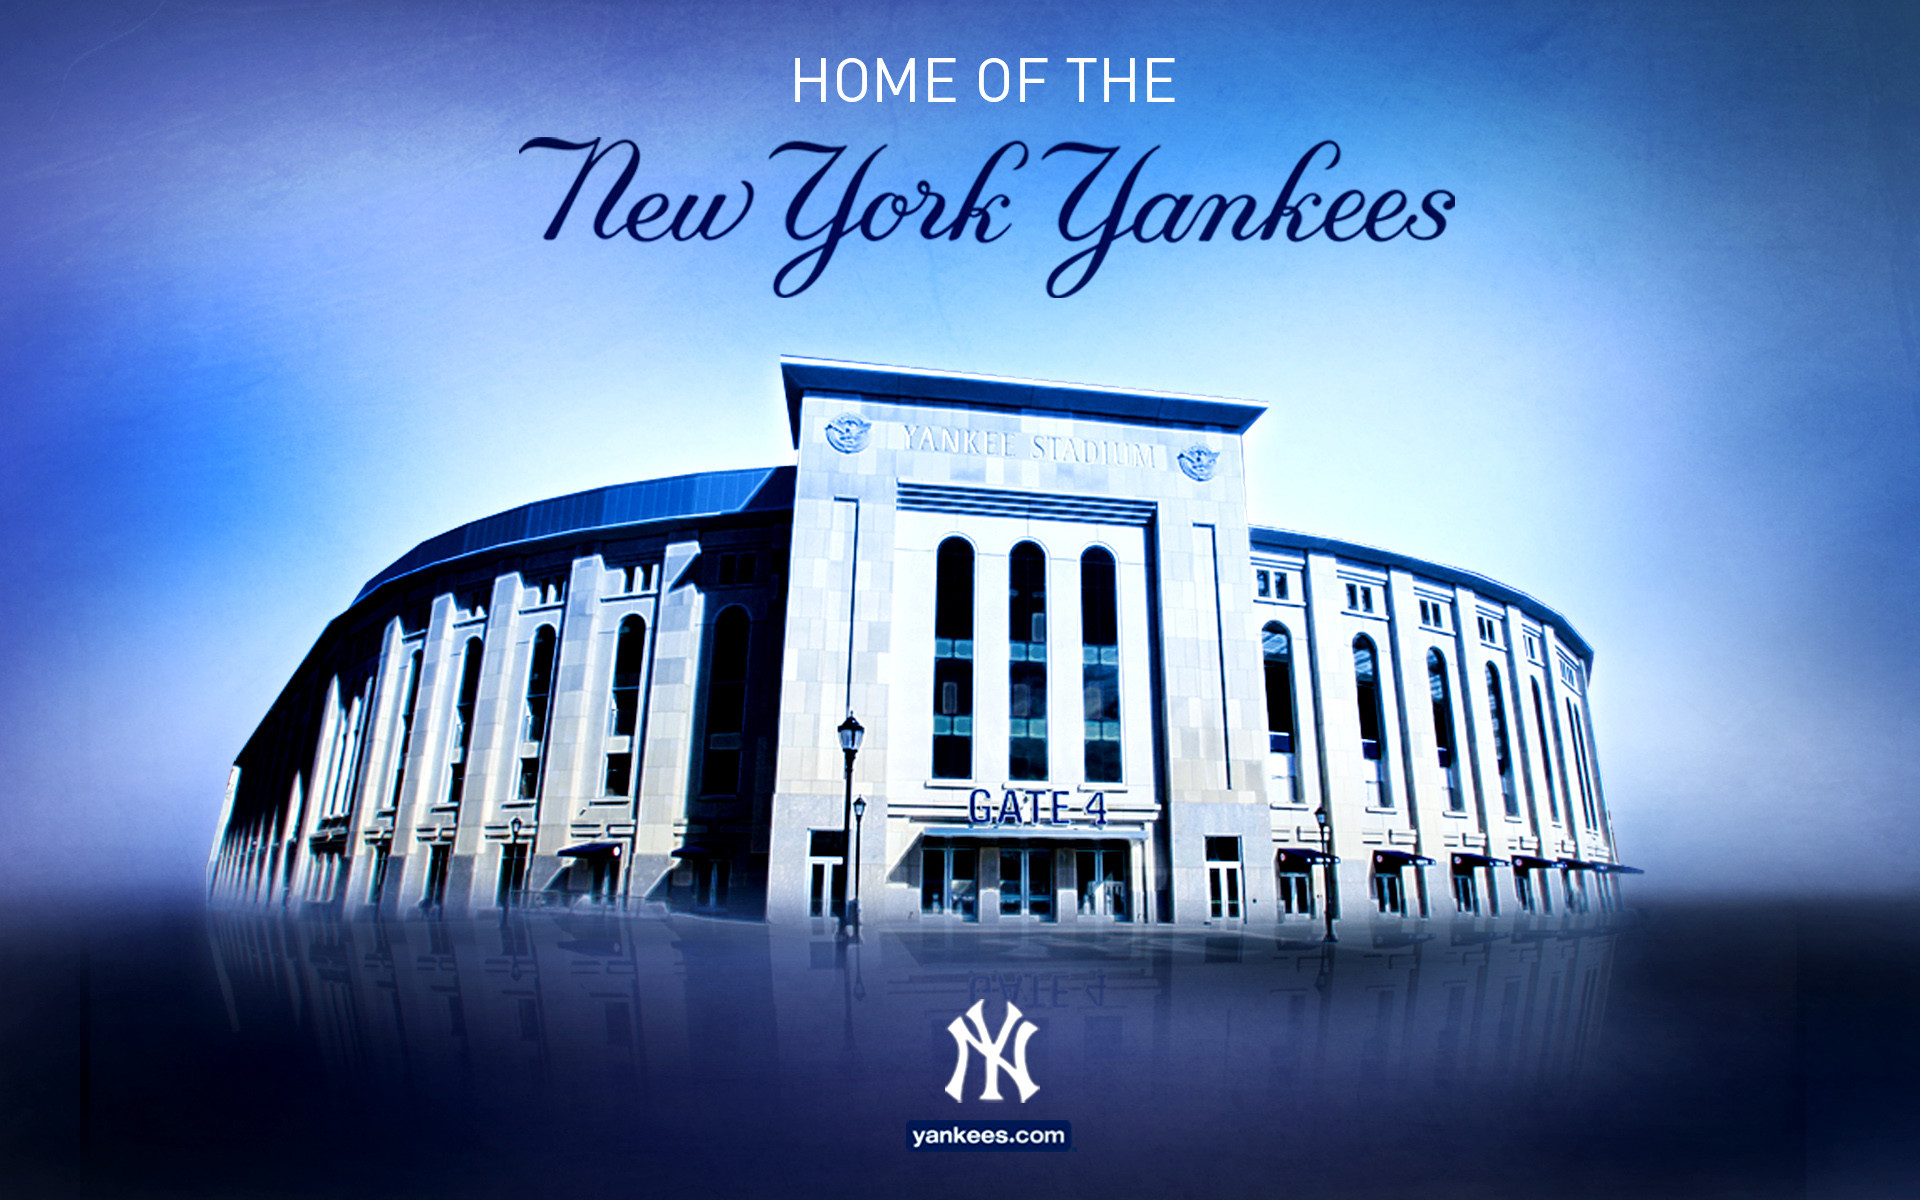 1920x1200 red logo yankees wallpaper - http://69hdwallpapers.com/red-logo-yankees- wallpaper/ | Free HD Wallpapers | Pinterest | Wallpaper